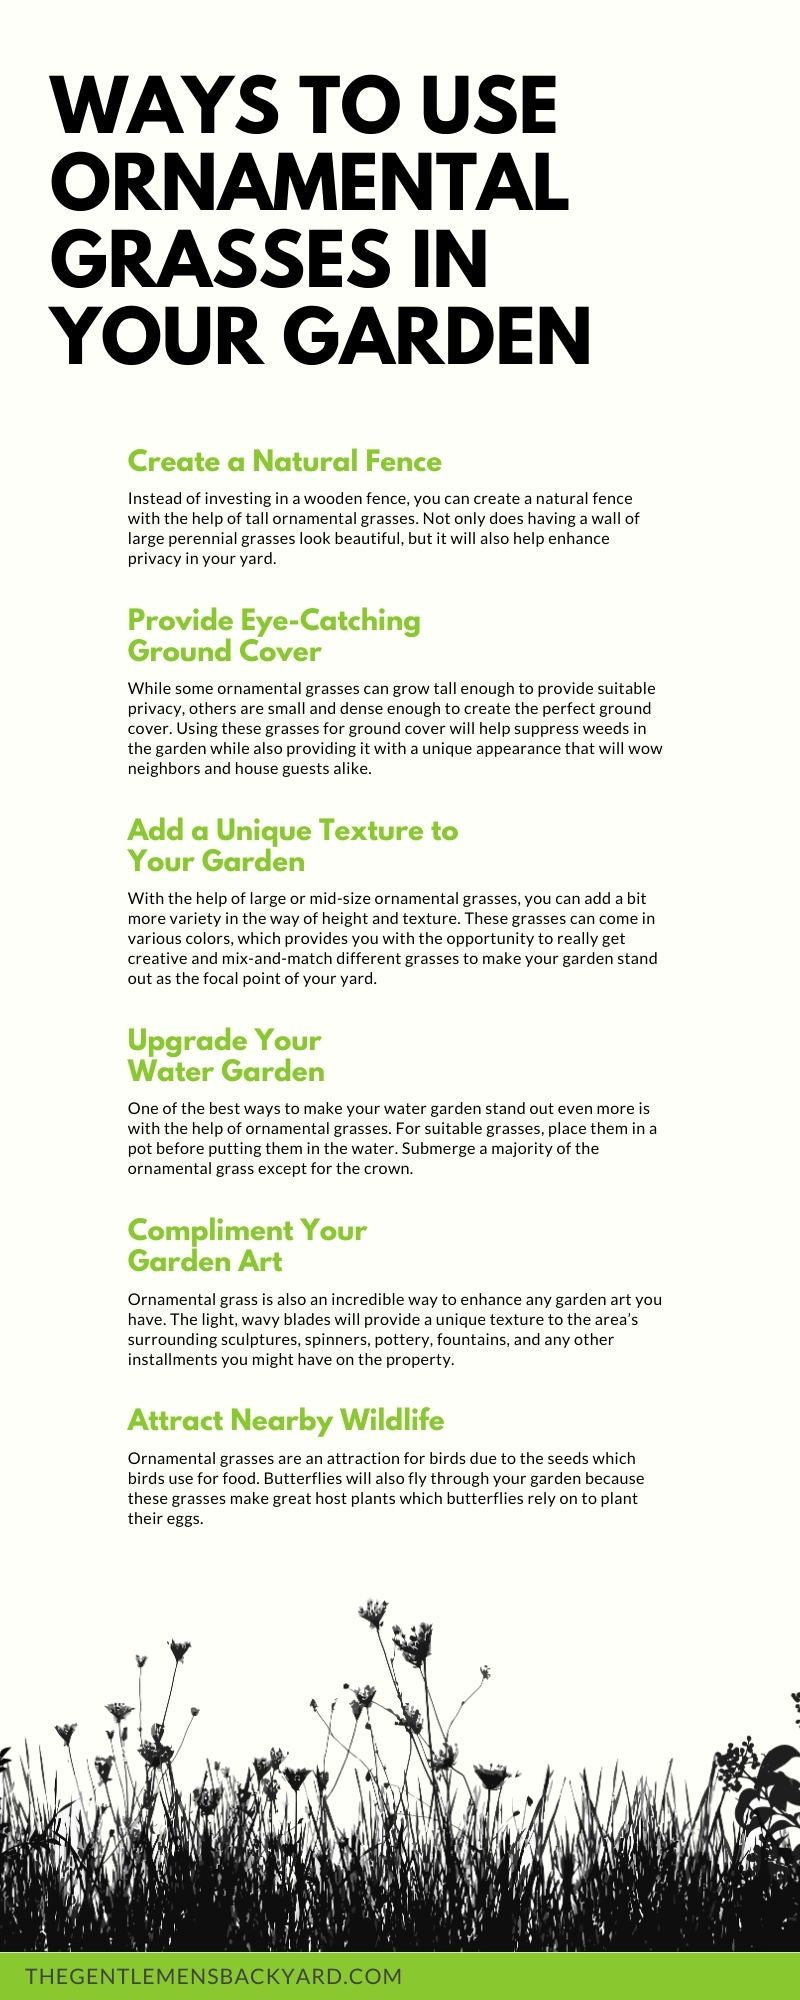 Ornamental Grasses in Your Garden Infographic